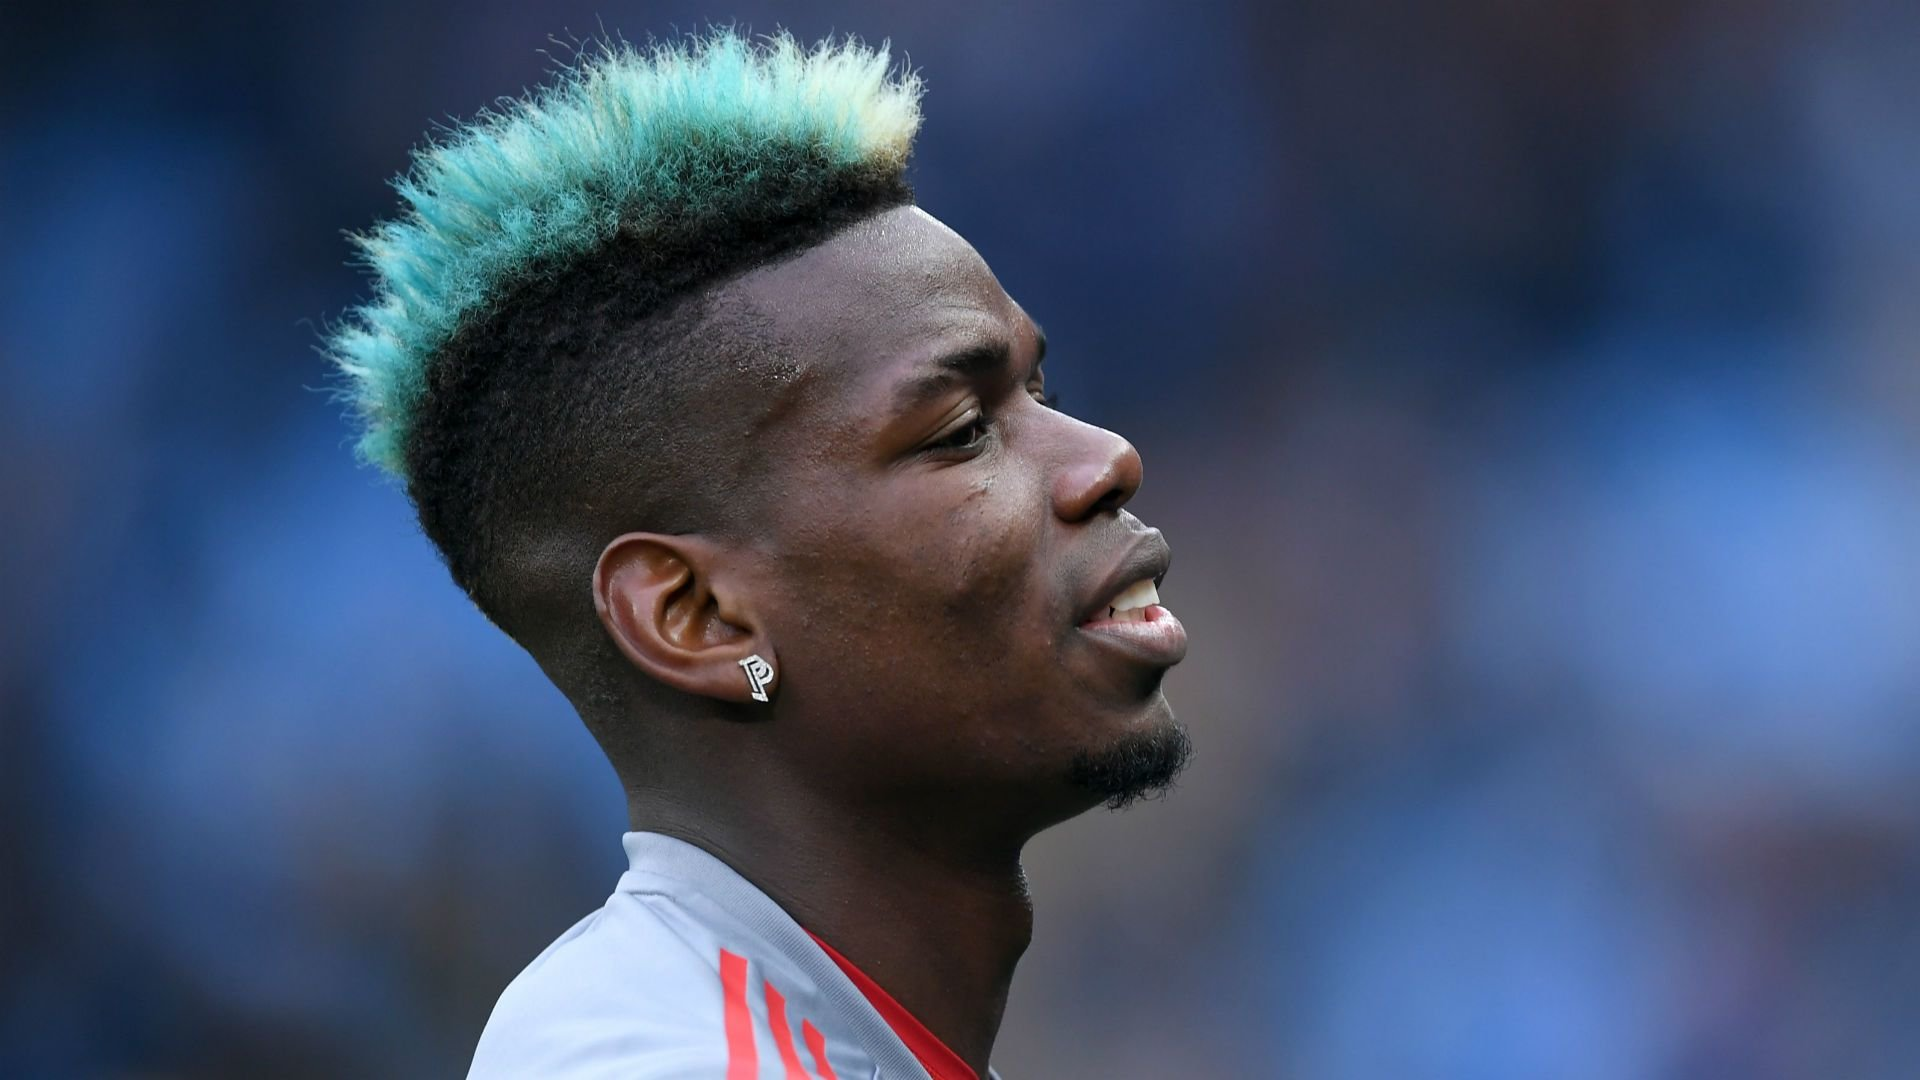 The Best Paul Pogba Haircuts Man Utd Star's Styles Who Cuts His Pictures